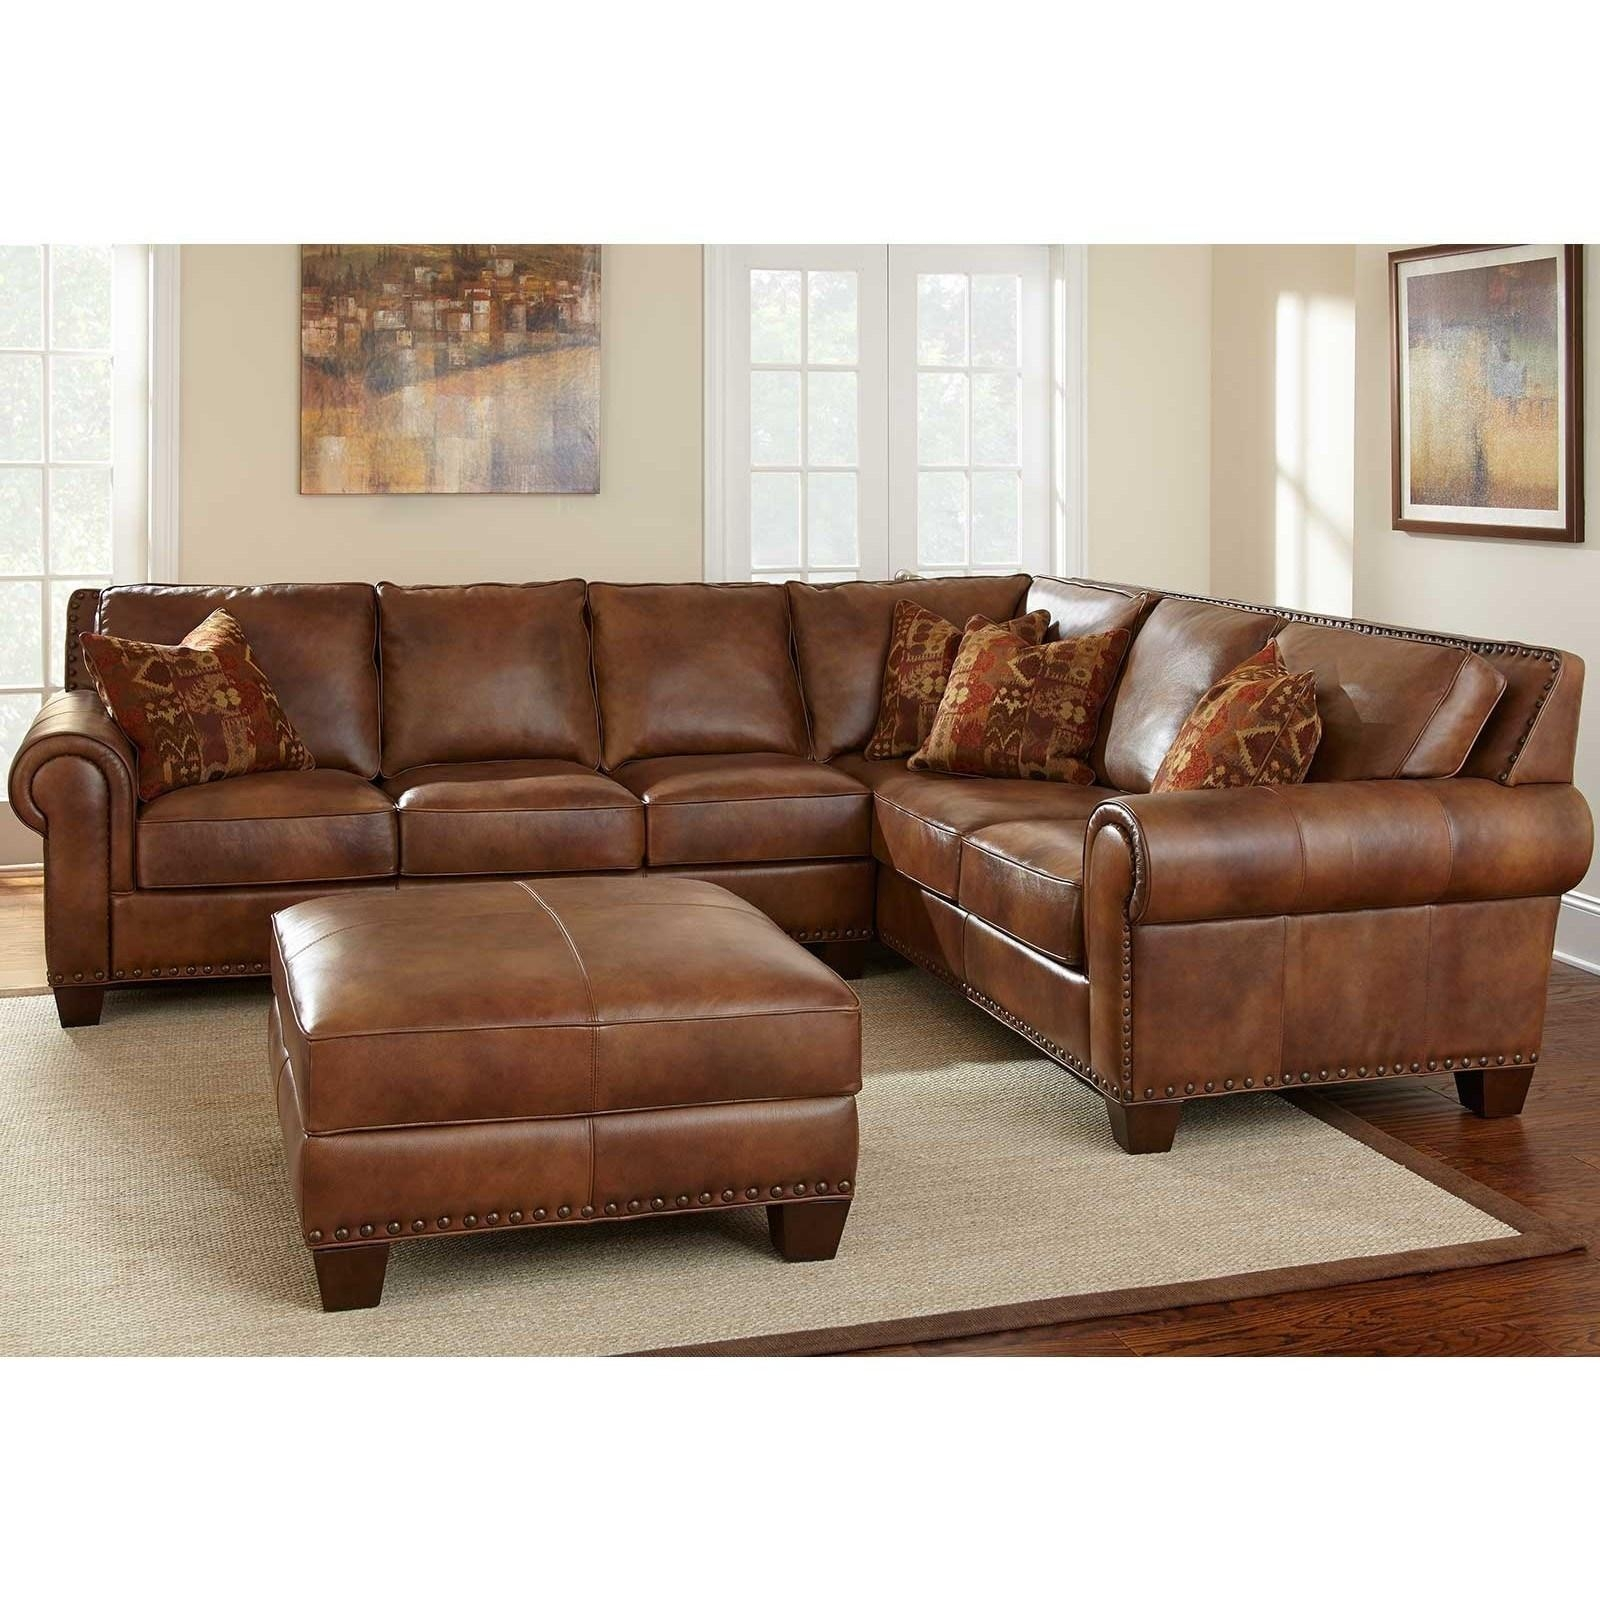 Sofas Center : Sofactionals On Sale For Cheapcloth Salemoon Pit Regarding Used Sectionals (Image 16 of 20)